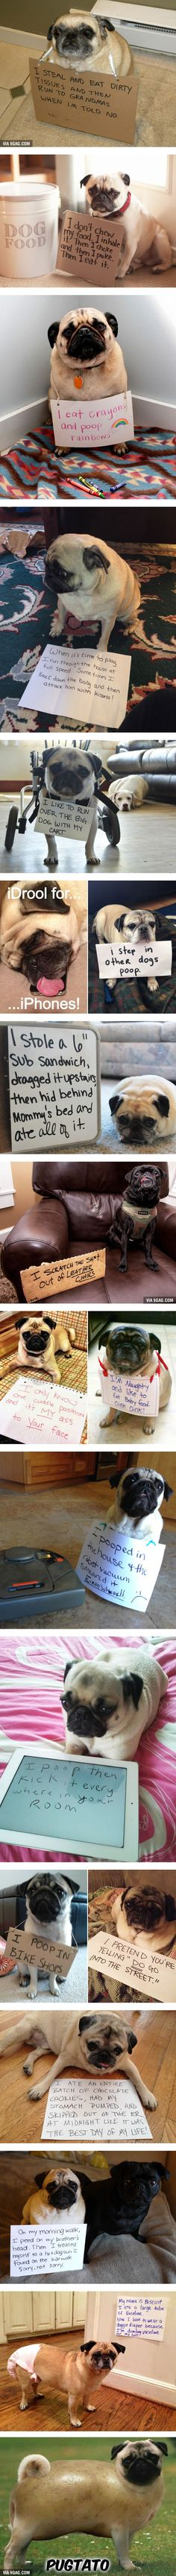 Hilariously Misbehaved Pugs